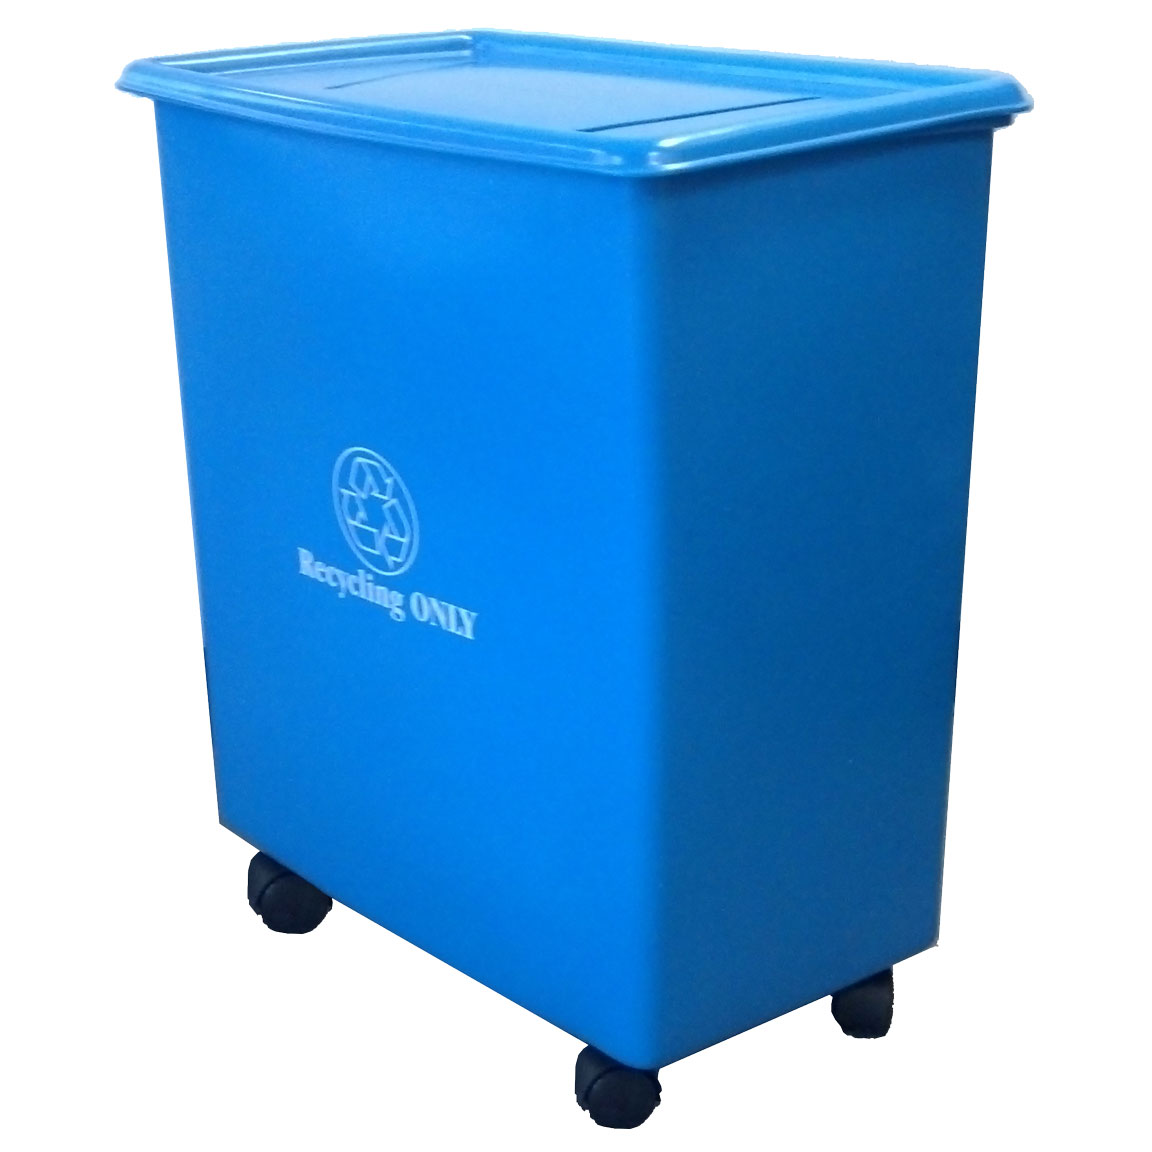 RC-32 - RC Series Thirty-Two Gallon Mobile Recycling Container - 22.75 x 13 x 25